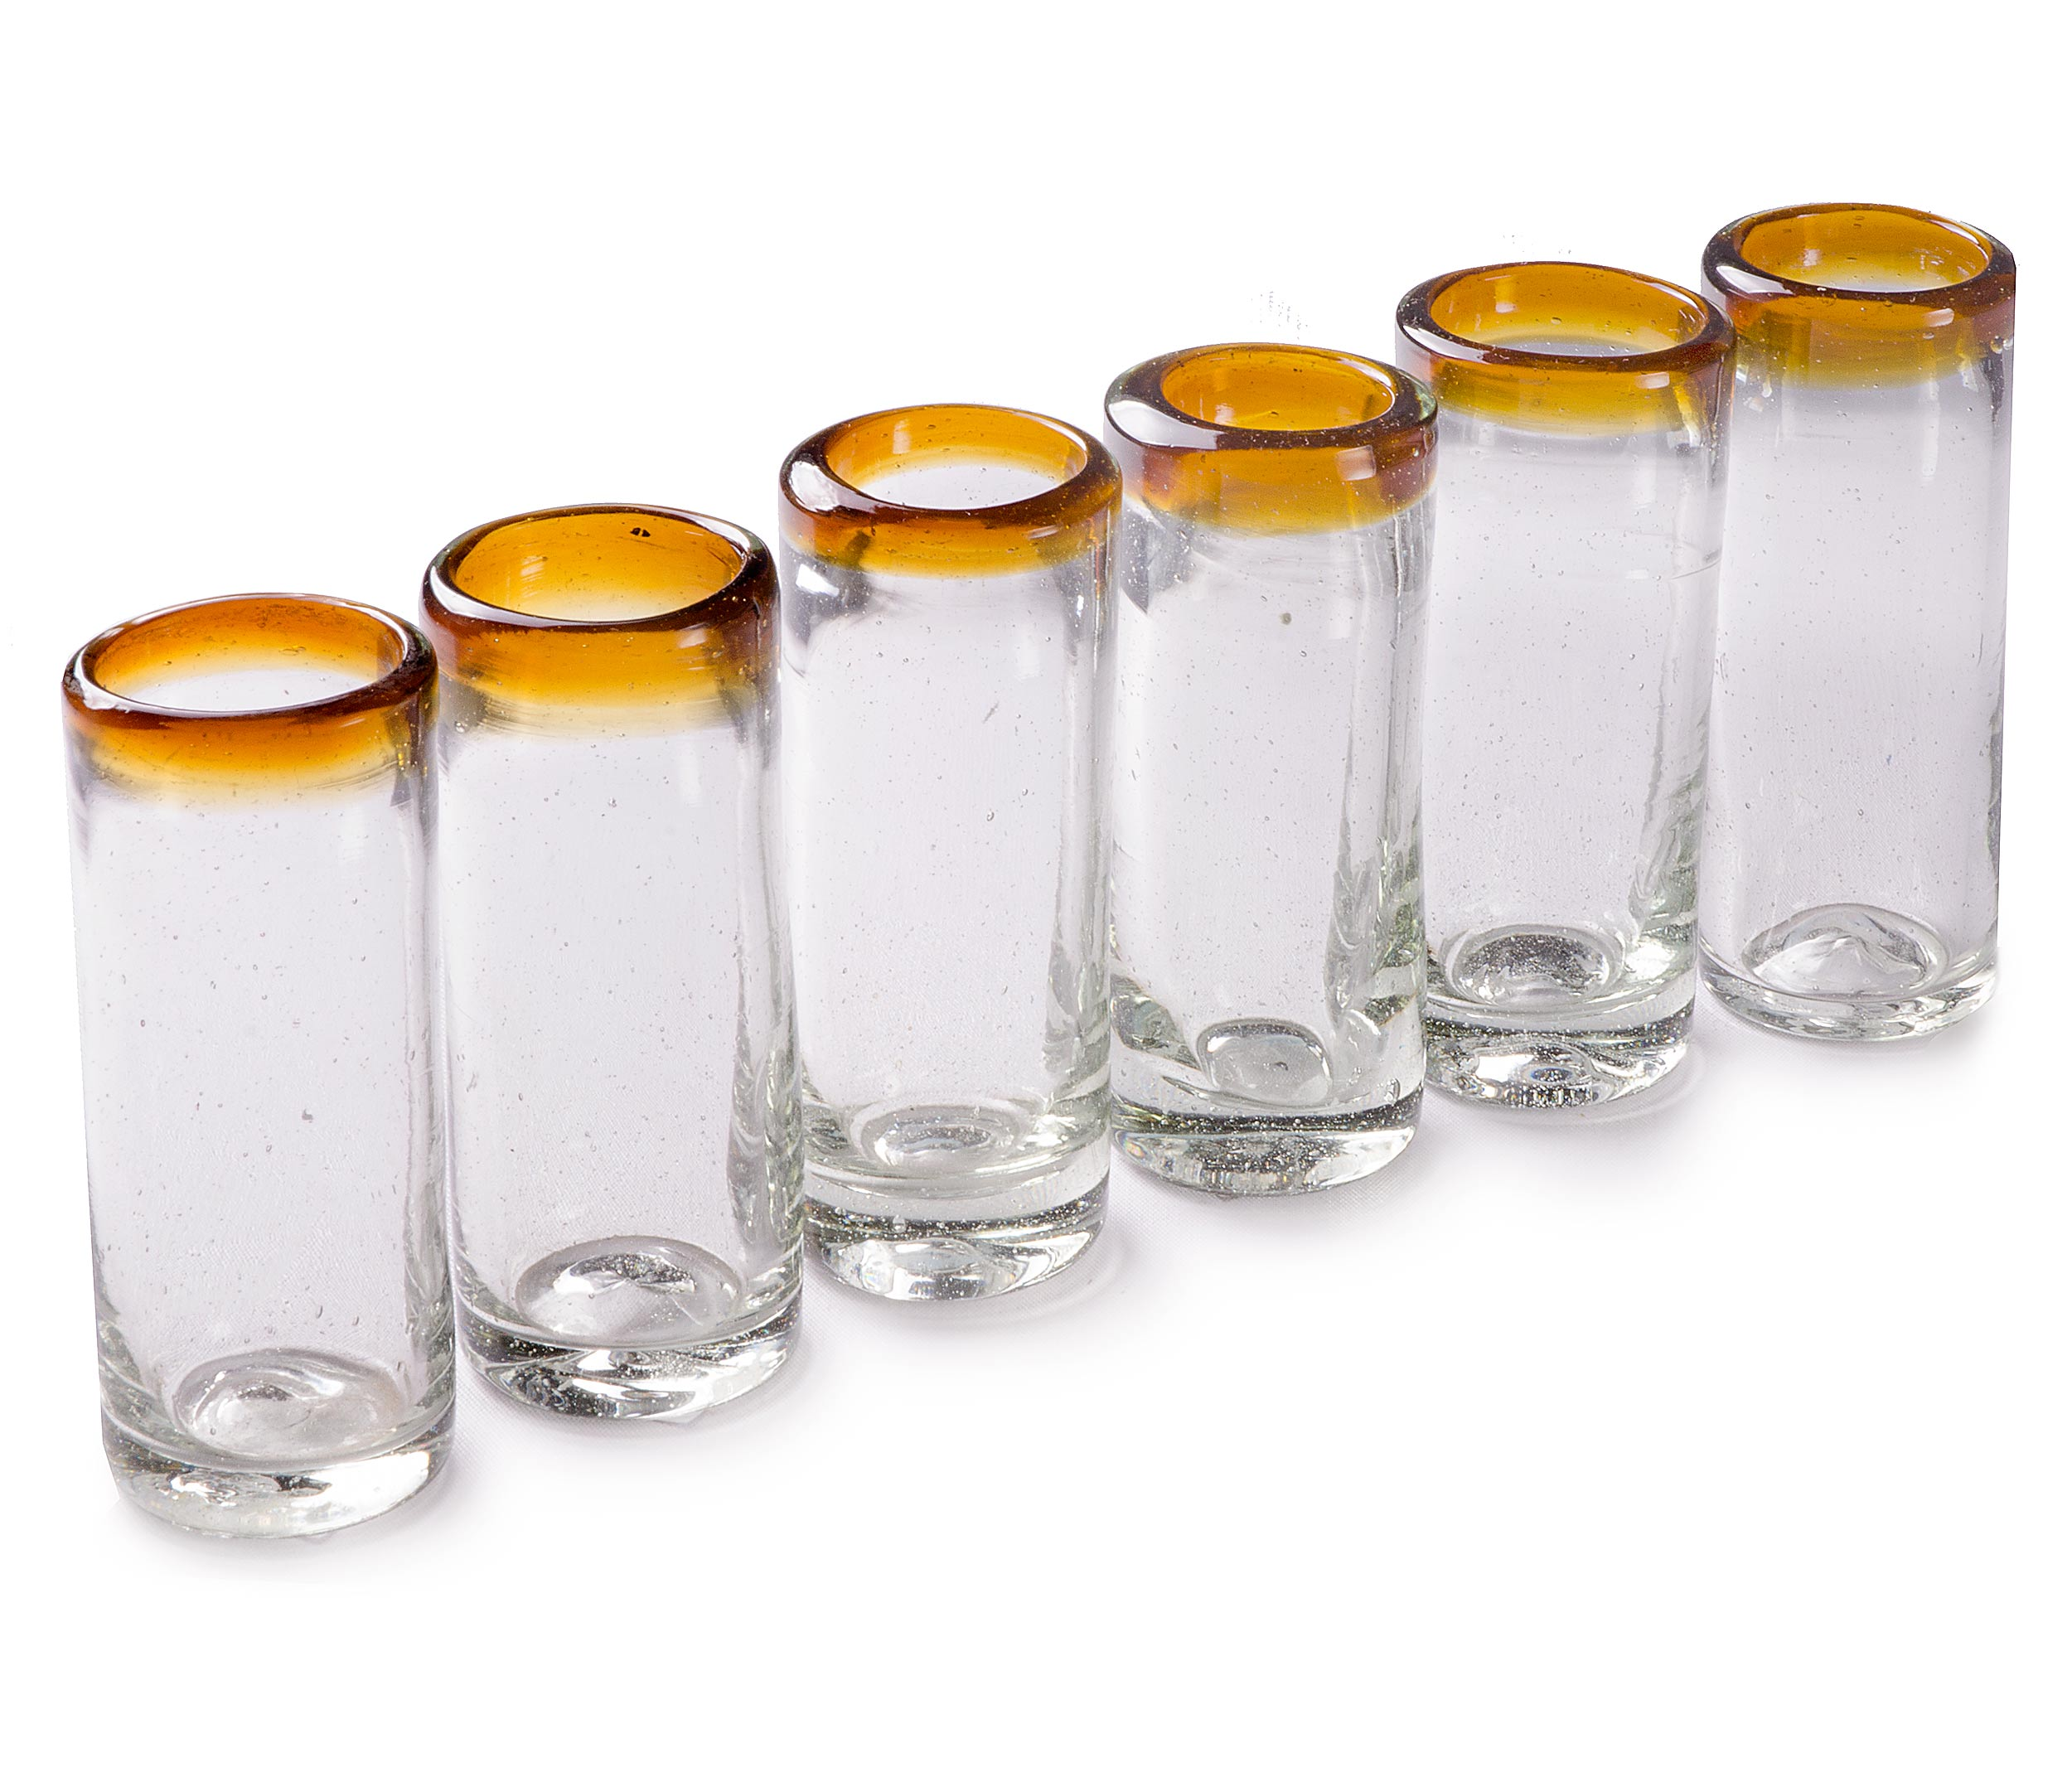 Orion Amber Rim 2 oz Shot Glass - Set of 6 - Orion's Table Mexican Glassware